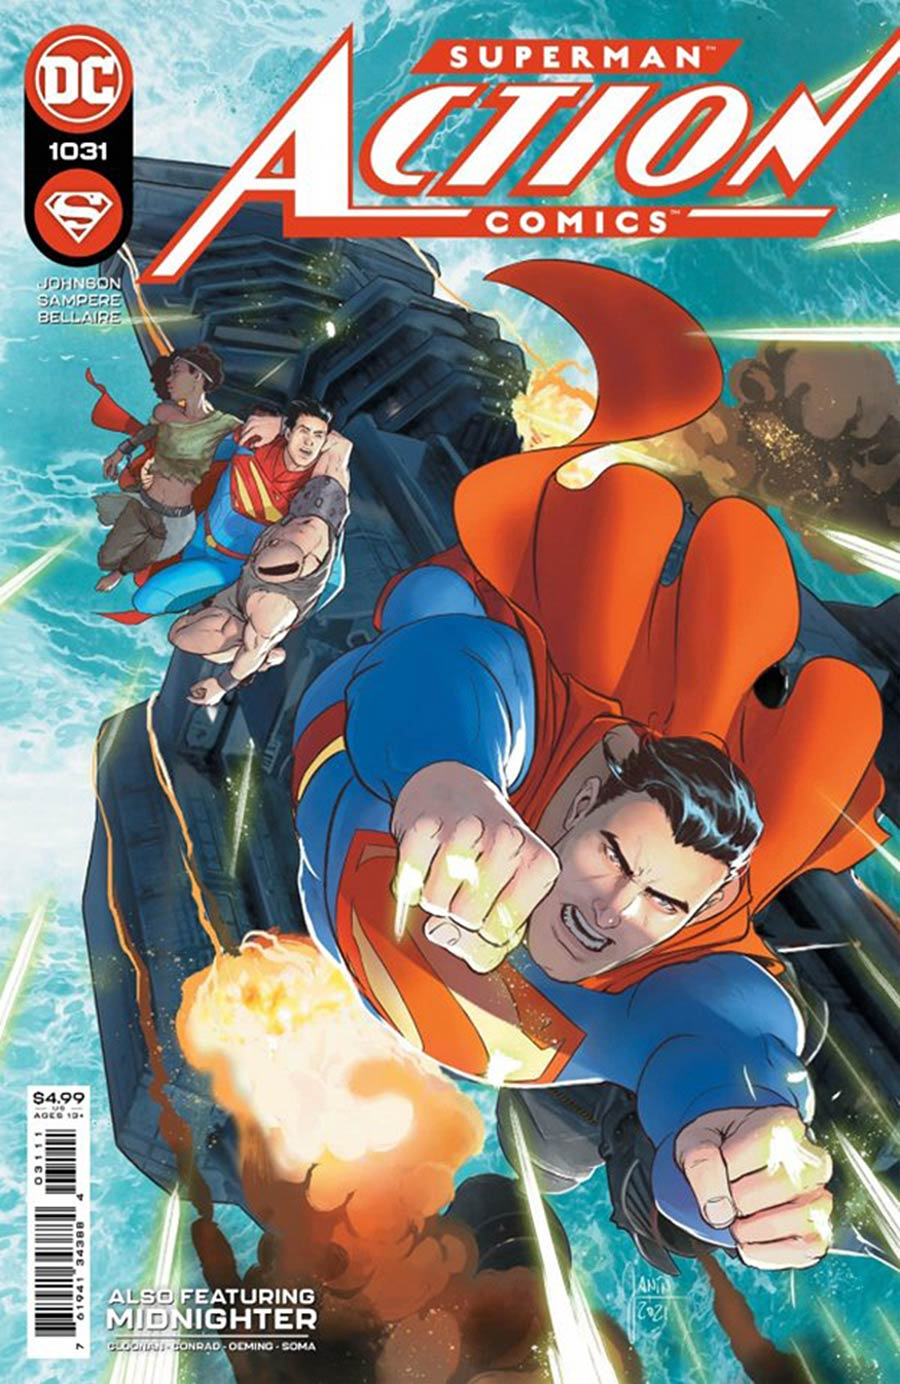 Action Comics Vol 2 #1031 Cover C DF Signed By Phillip Kennedy Johnson